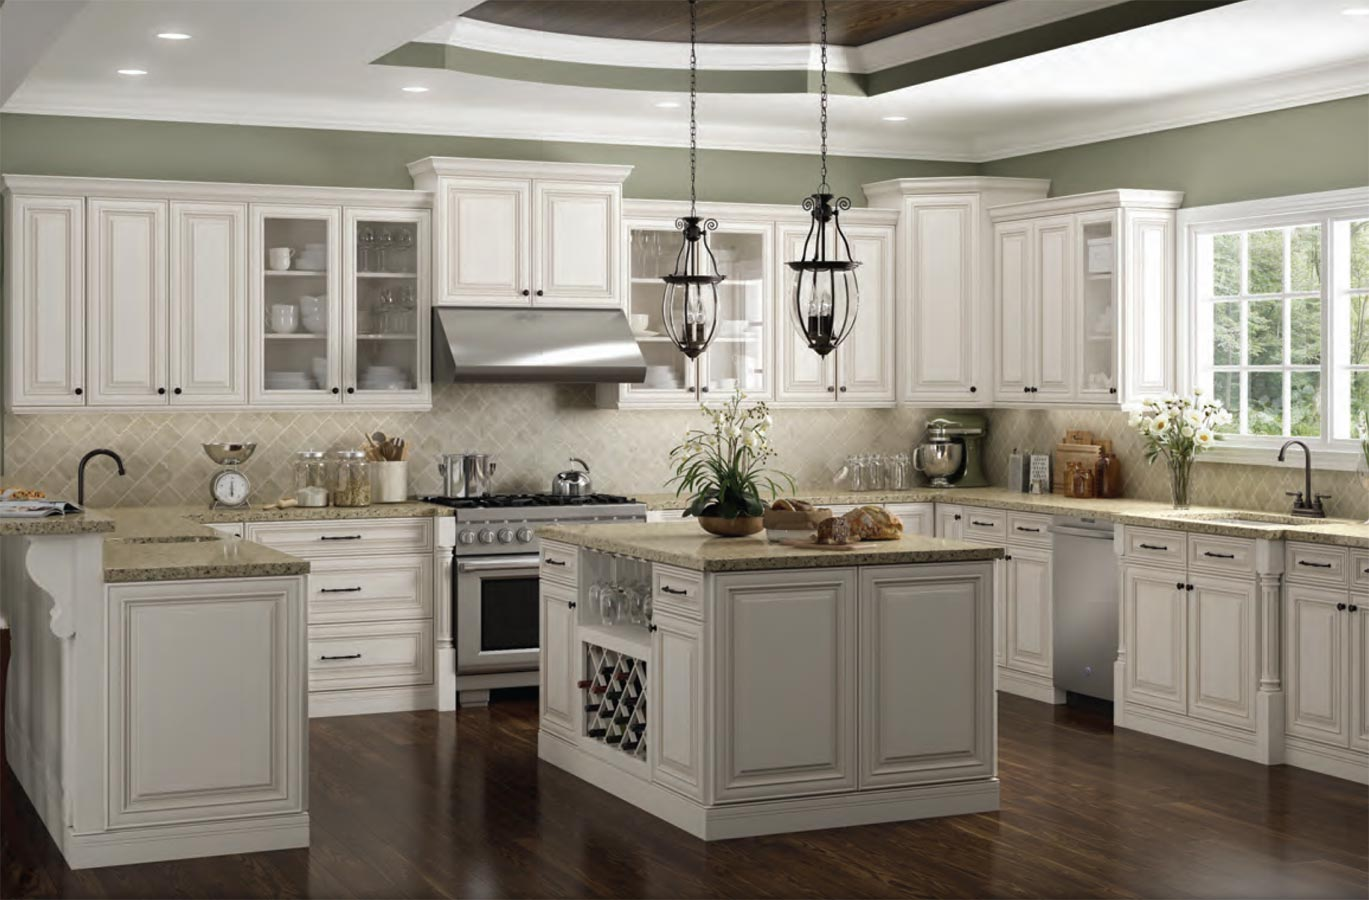 Painted kitchen cabinets cabinet ideas houselogic home for Kitchen white cabinets